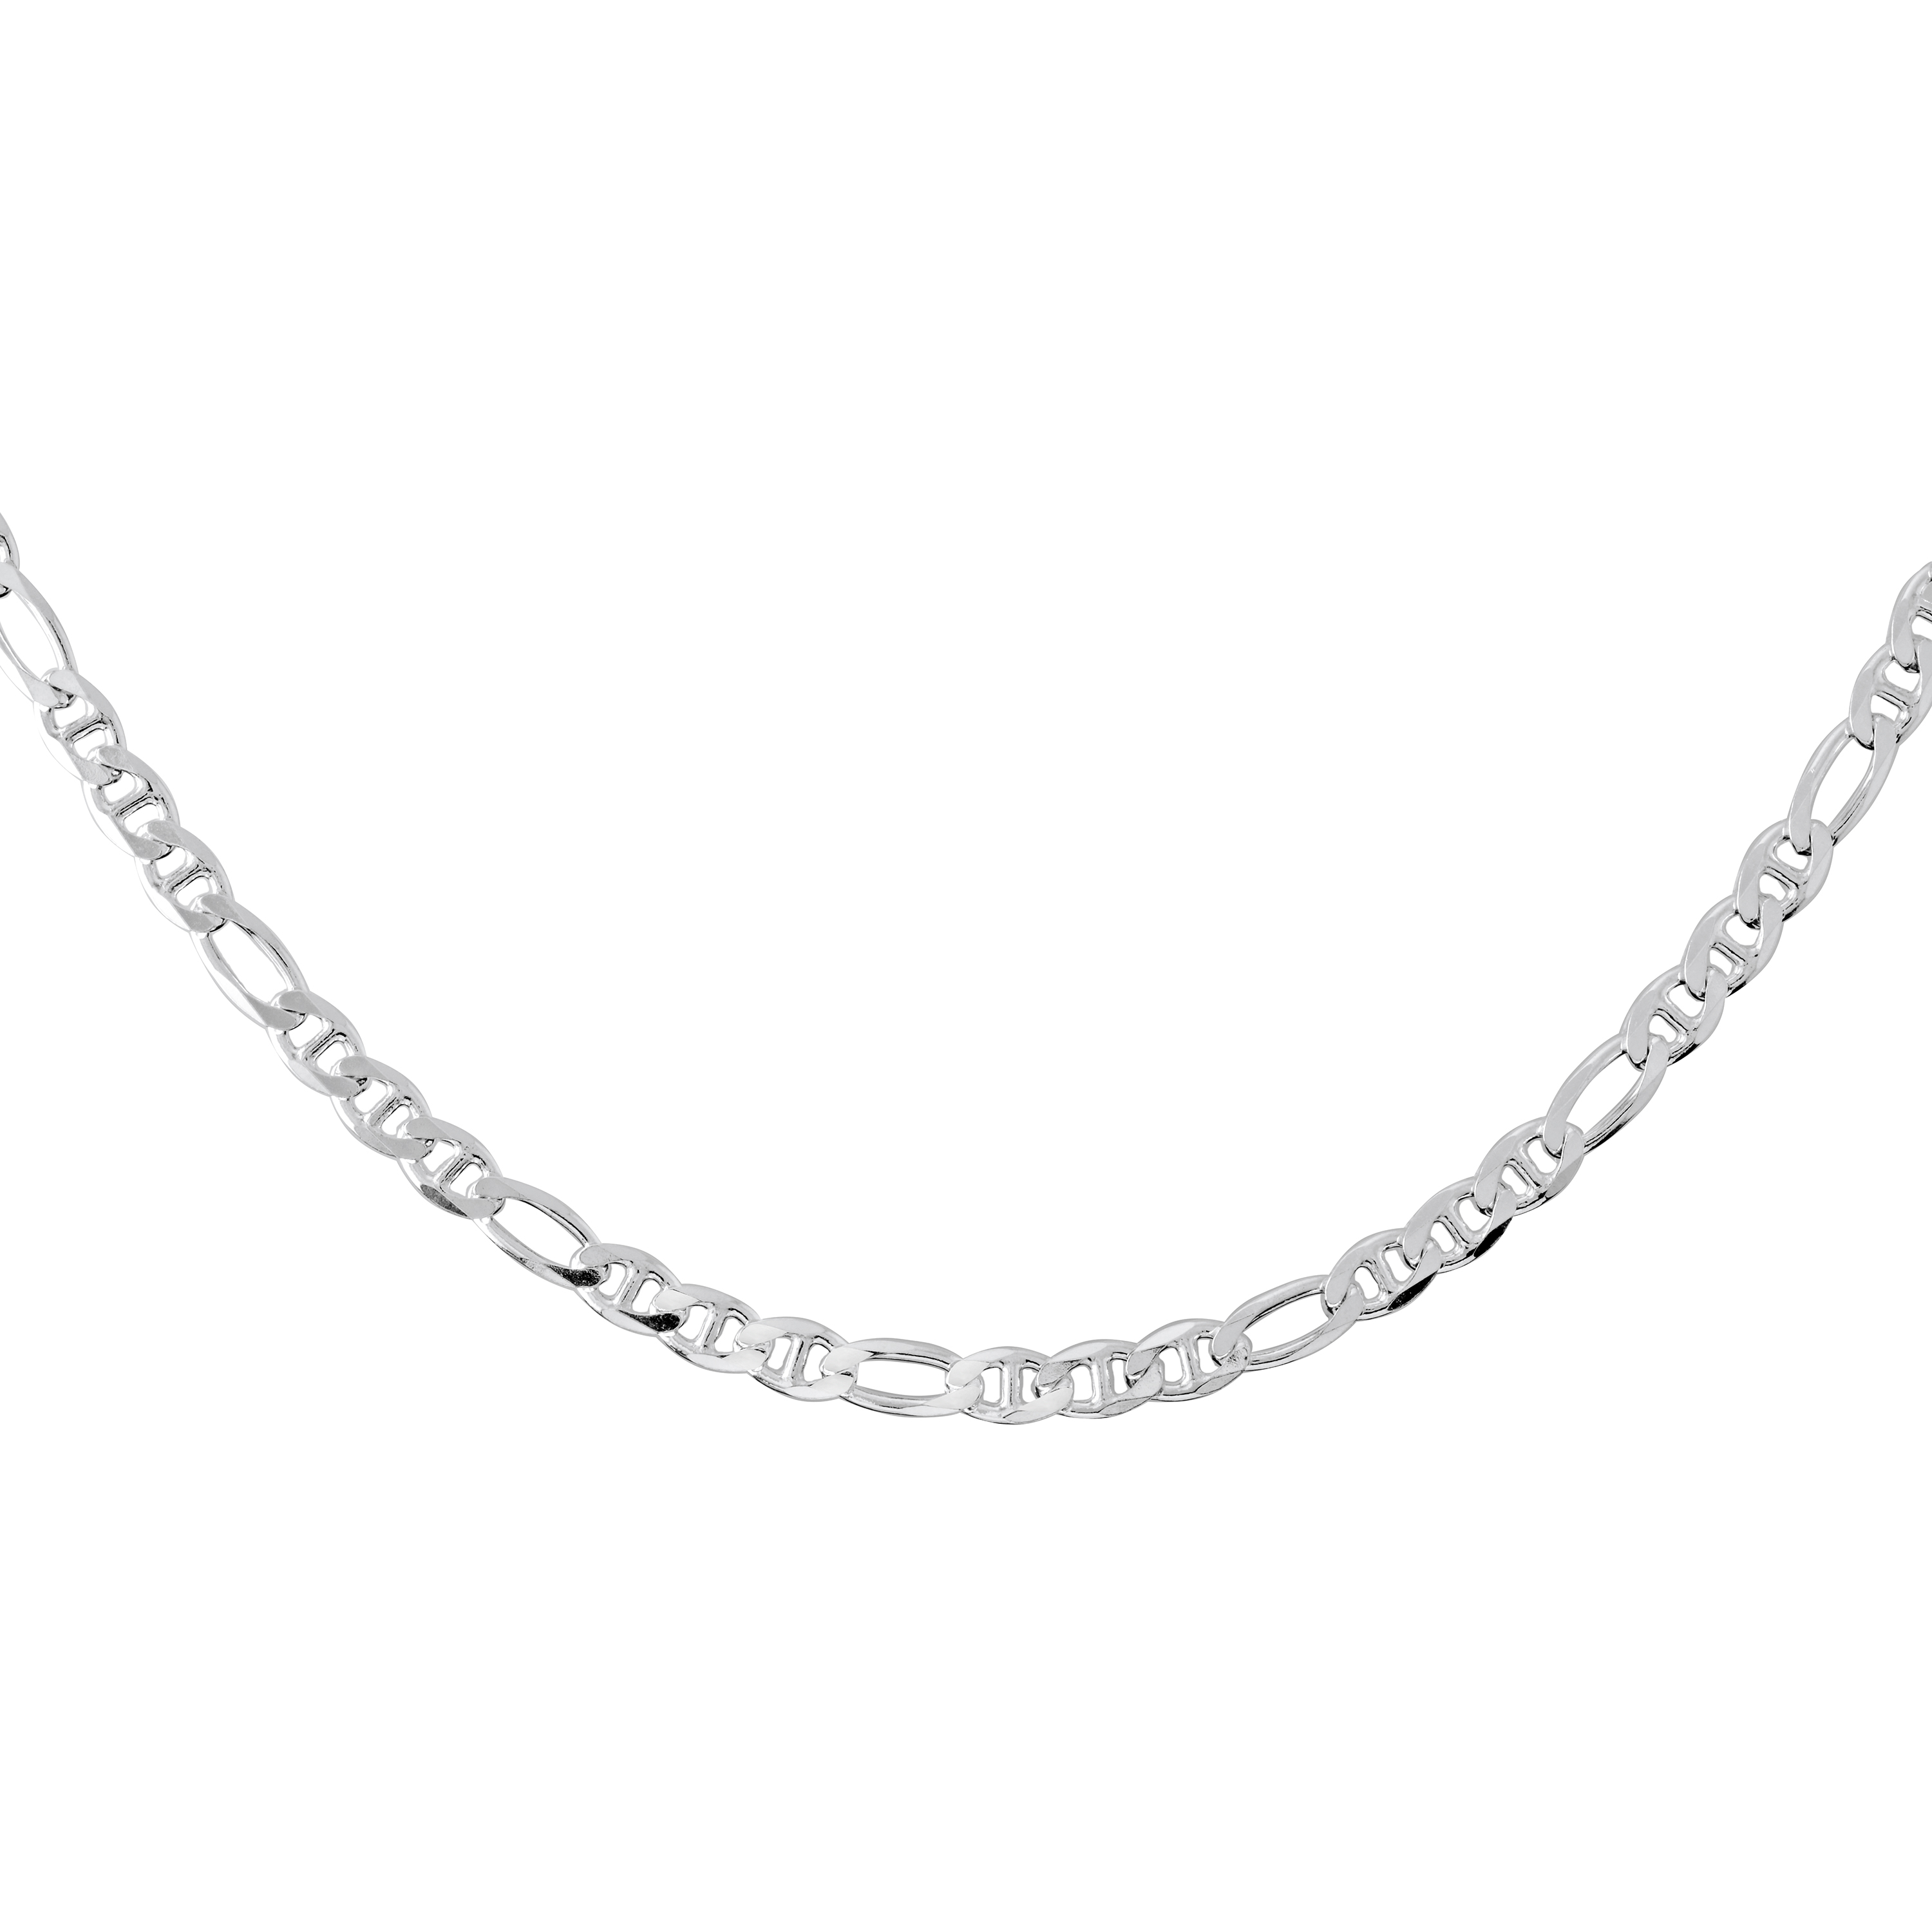 Chaîne figarucci 18'' - Argent sterling